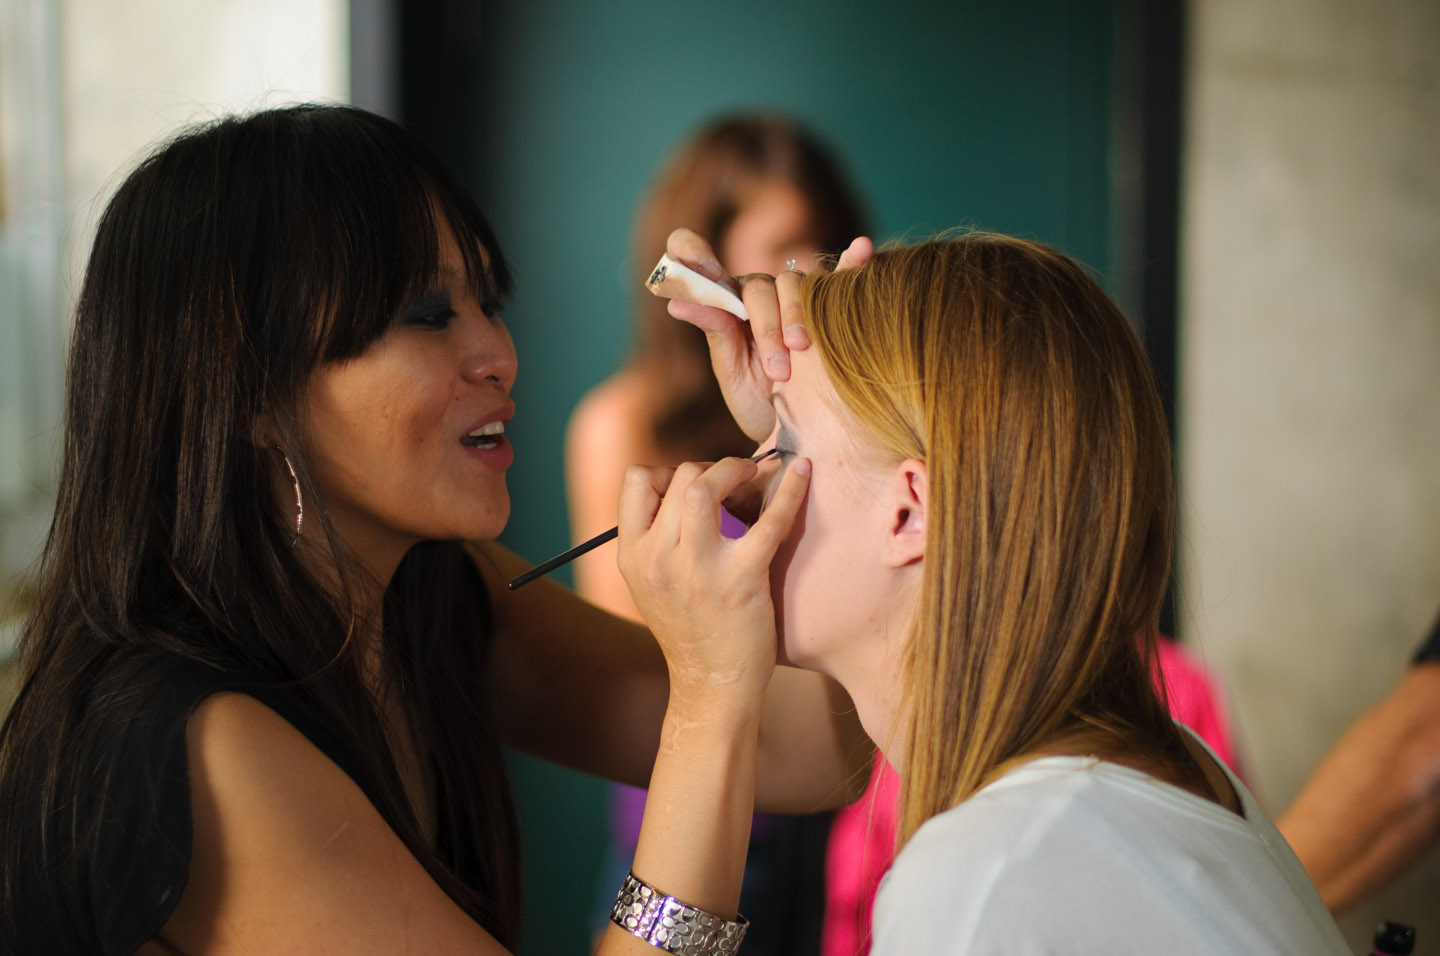 Laa was the makeup artist for a number of the women models